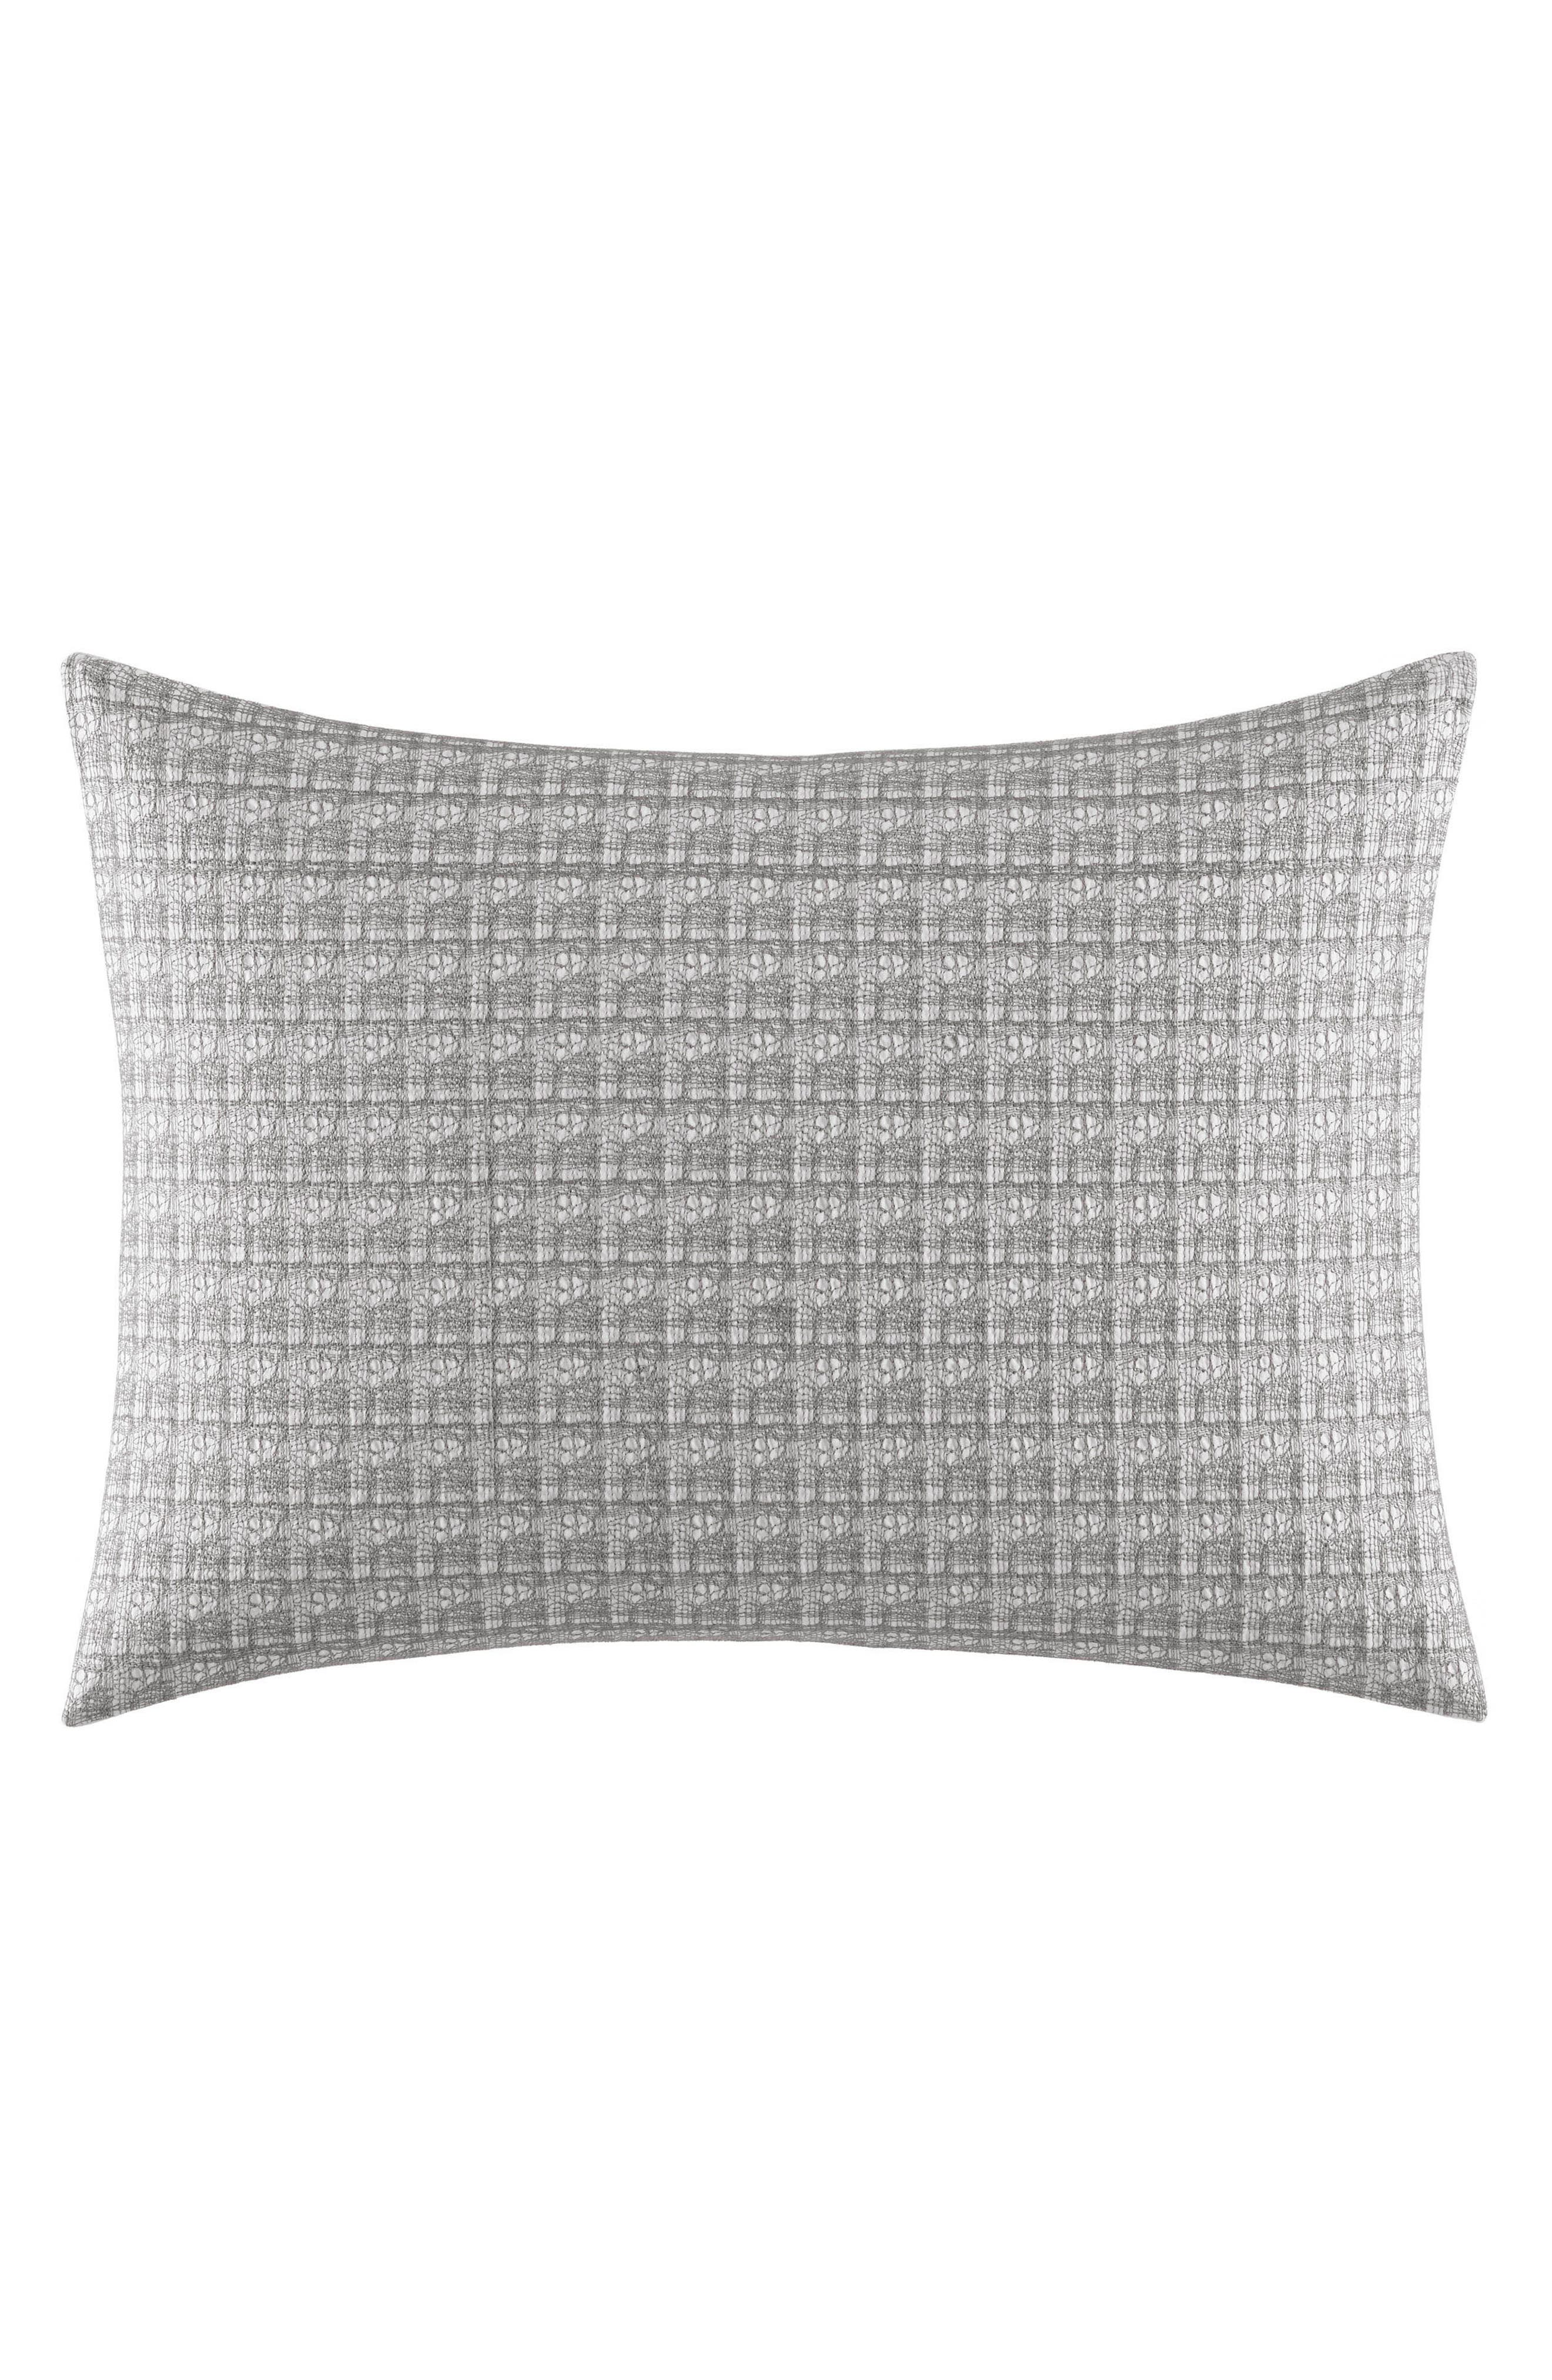 Mirrored Breakfast Accent Pillow,                         Main,                         color, 020